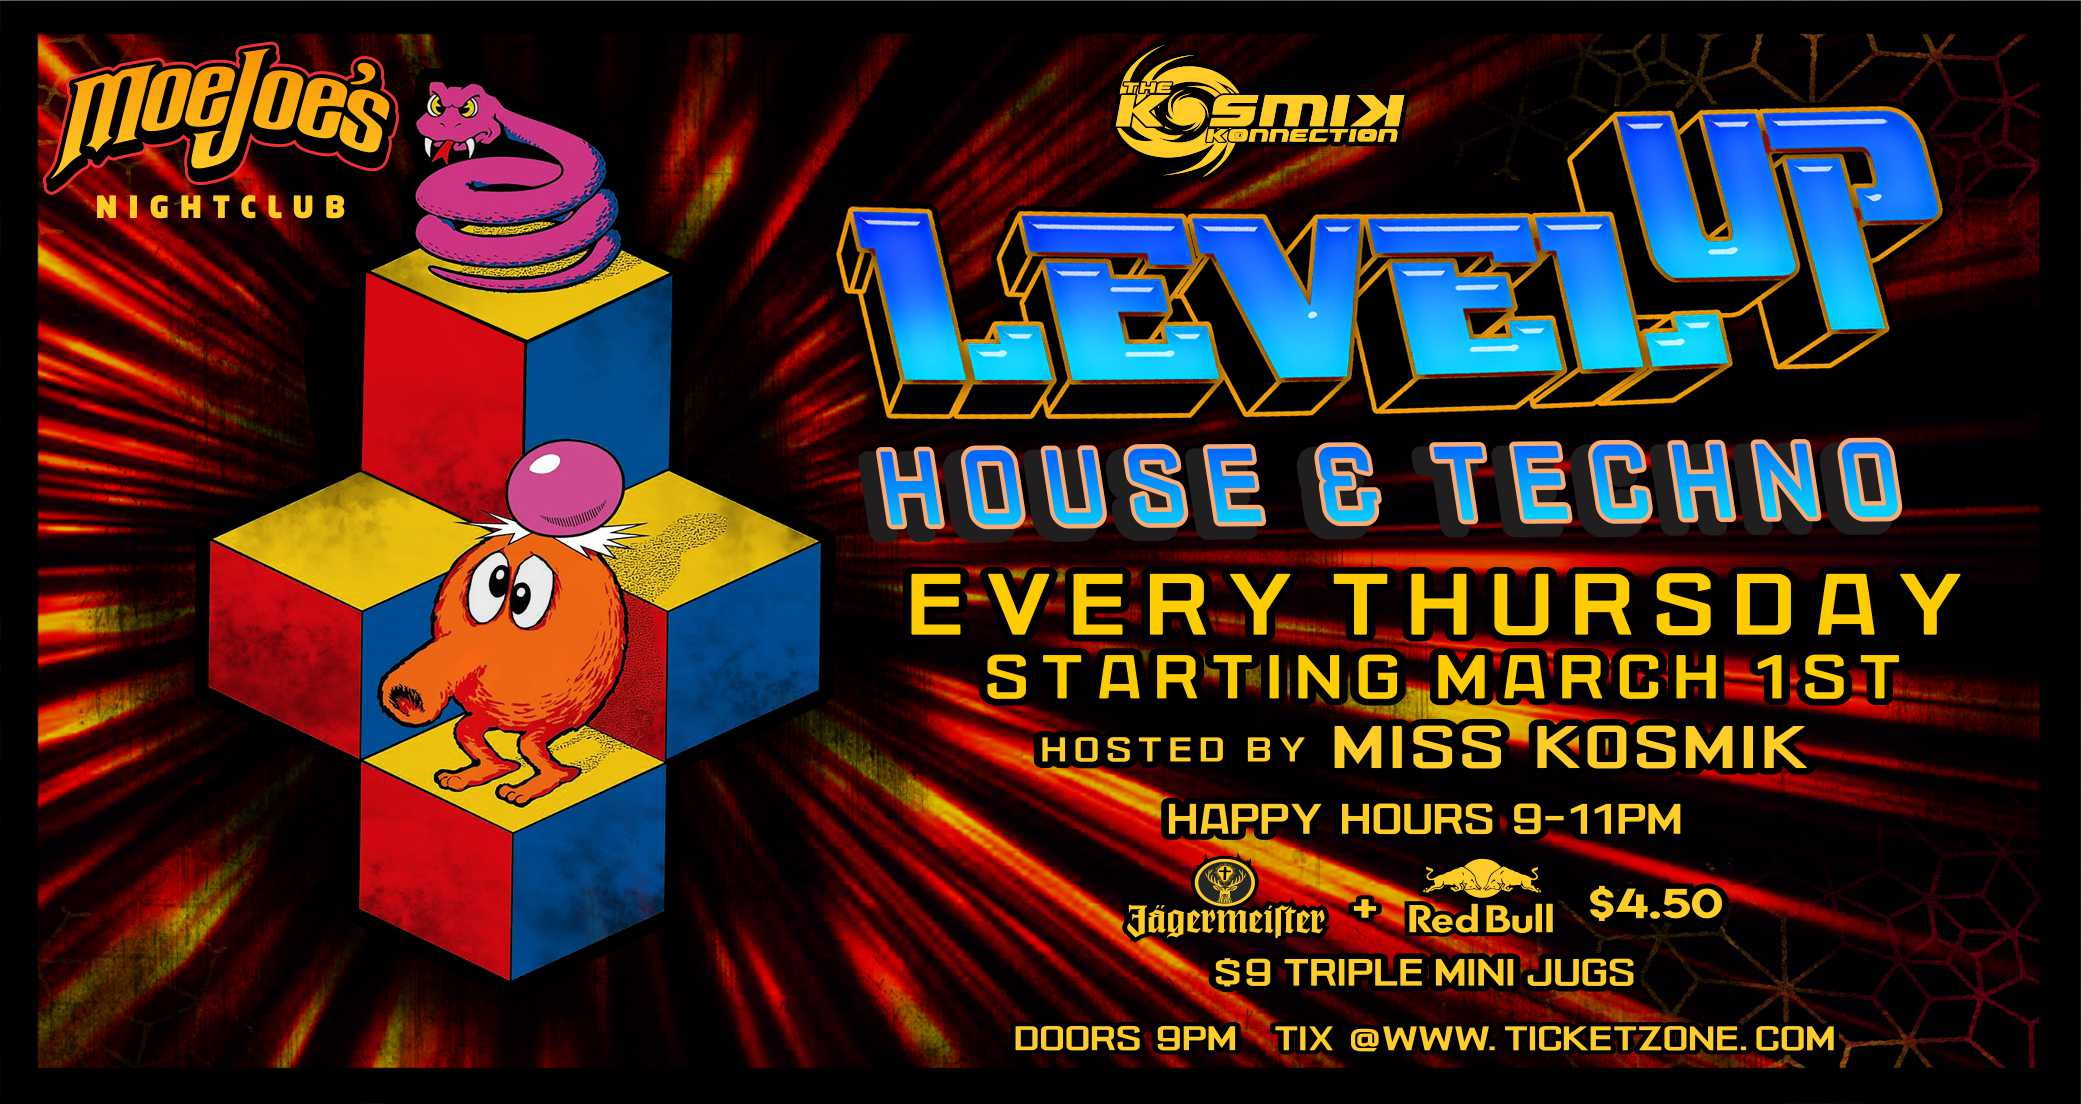 Moe Joes House & Techno Night Level Up